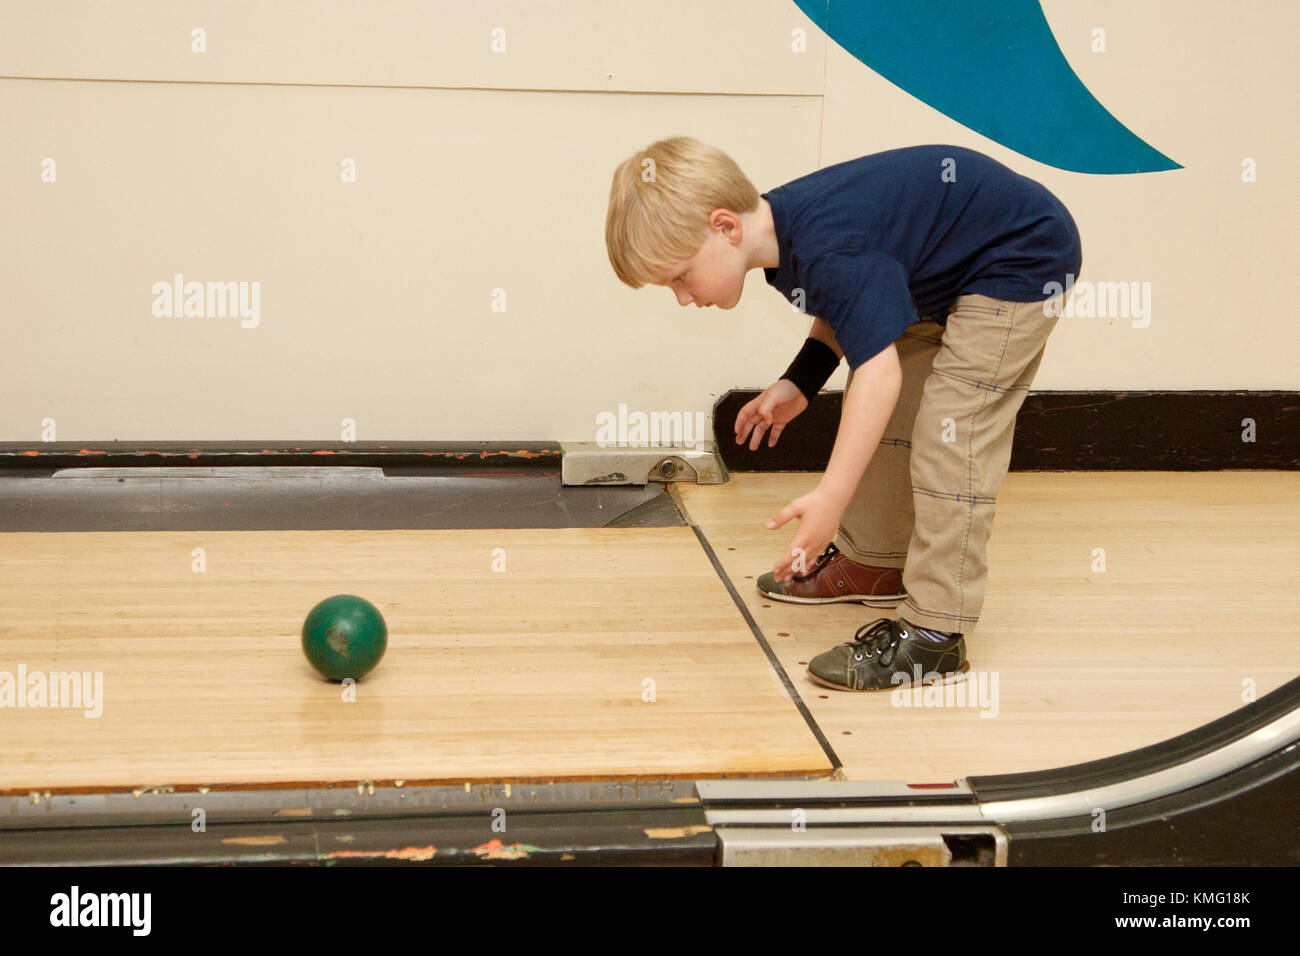 a young blonde boy bends over and launches bowling ball down an alley - Stock Image